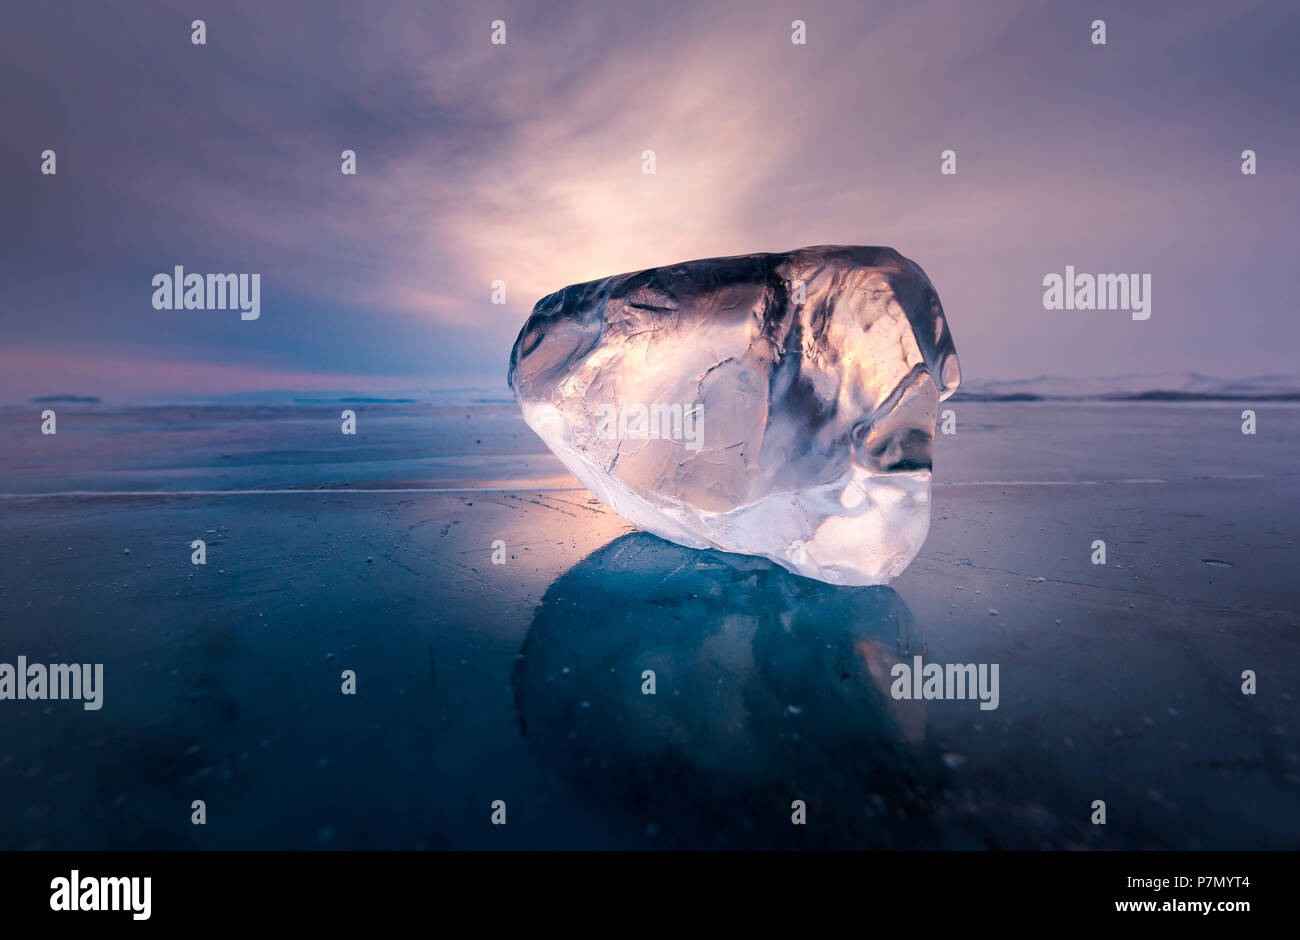 Piece of ice with sun reflection at lake Baikal, Irkutsk region, Siberia, Russia - Stock Image